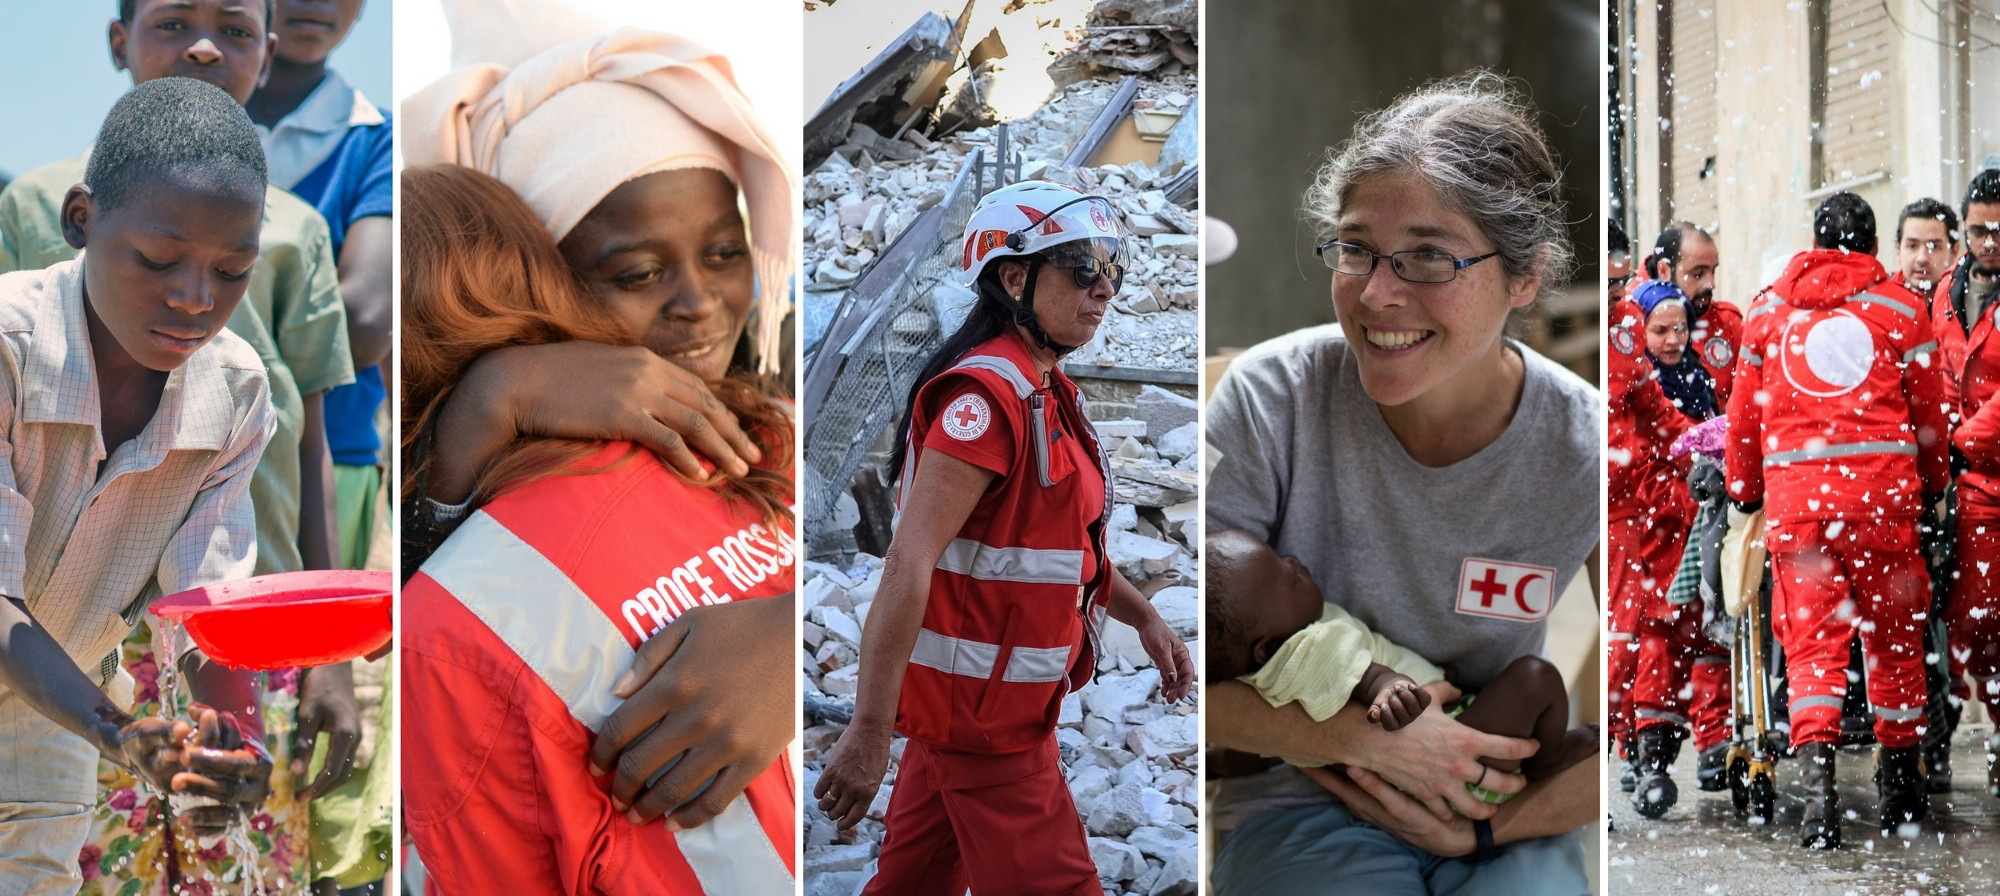 our best photos of the power of good n red a photo essay dedicated to everyone who helped make the world a better place in 2016